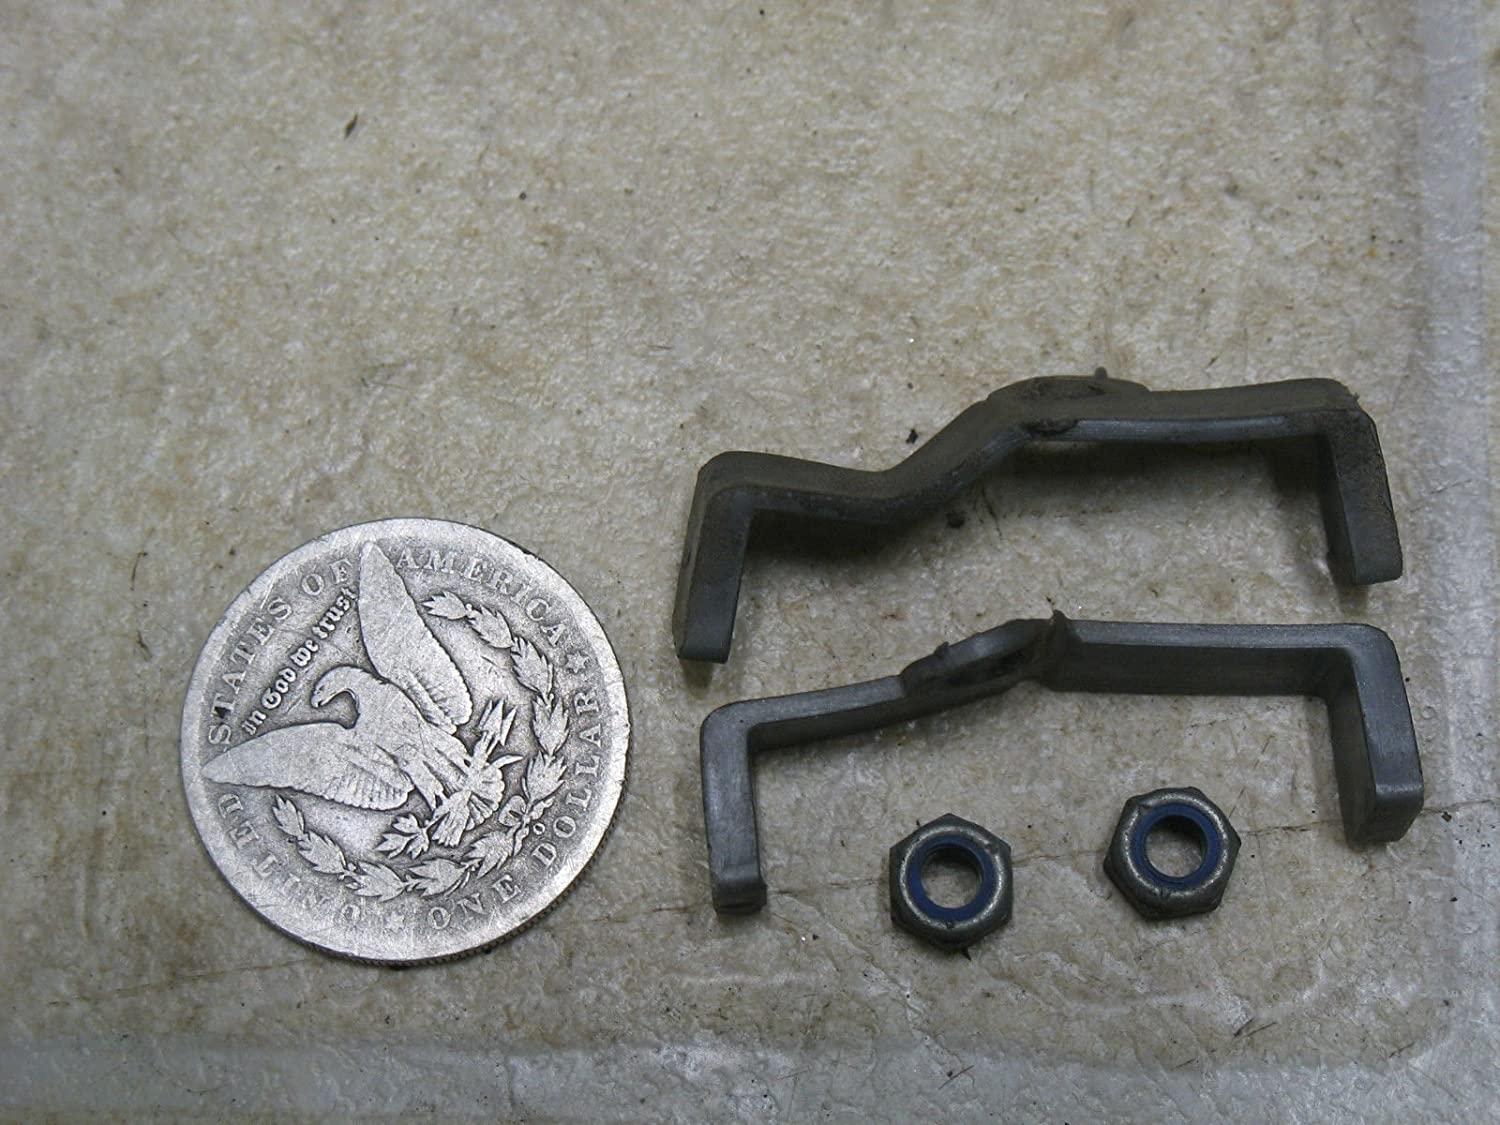 Amazon.com: 77 KTM FOXI GT SACHS 50cc FRONT LOWER FRAME MAIN WIRING HARNESS  COVER HARDWARE: Automotive